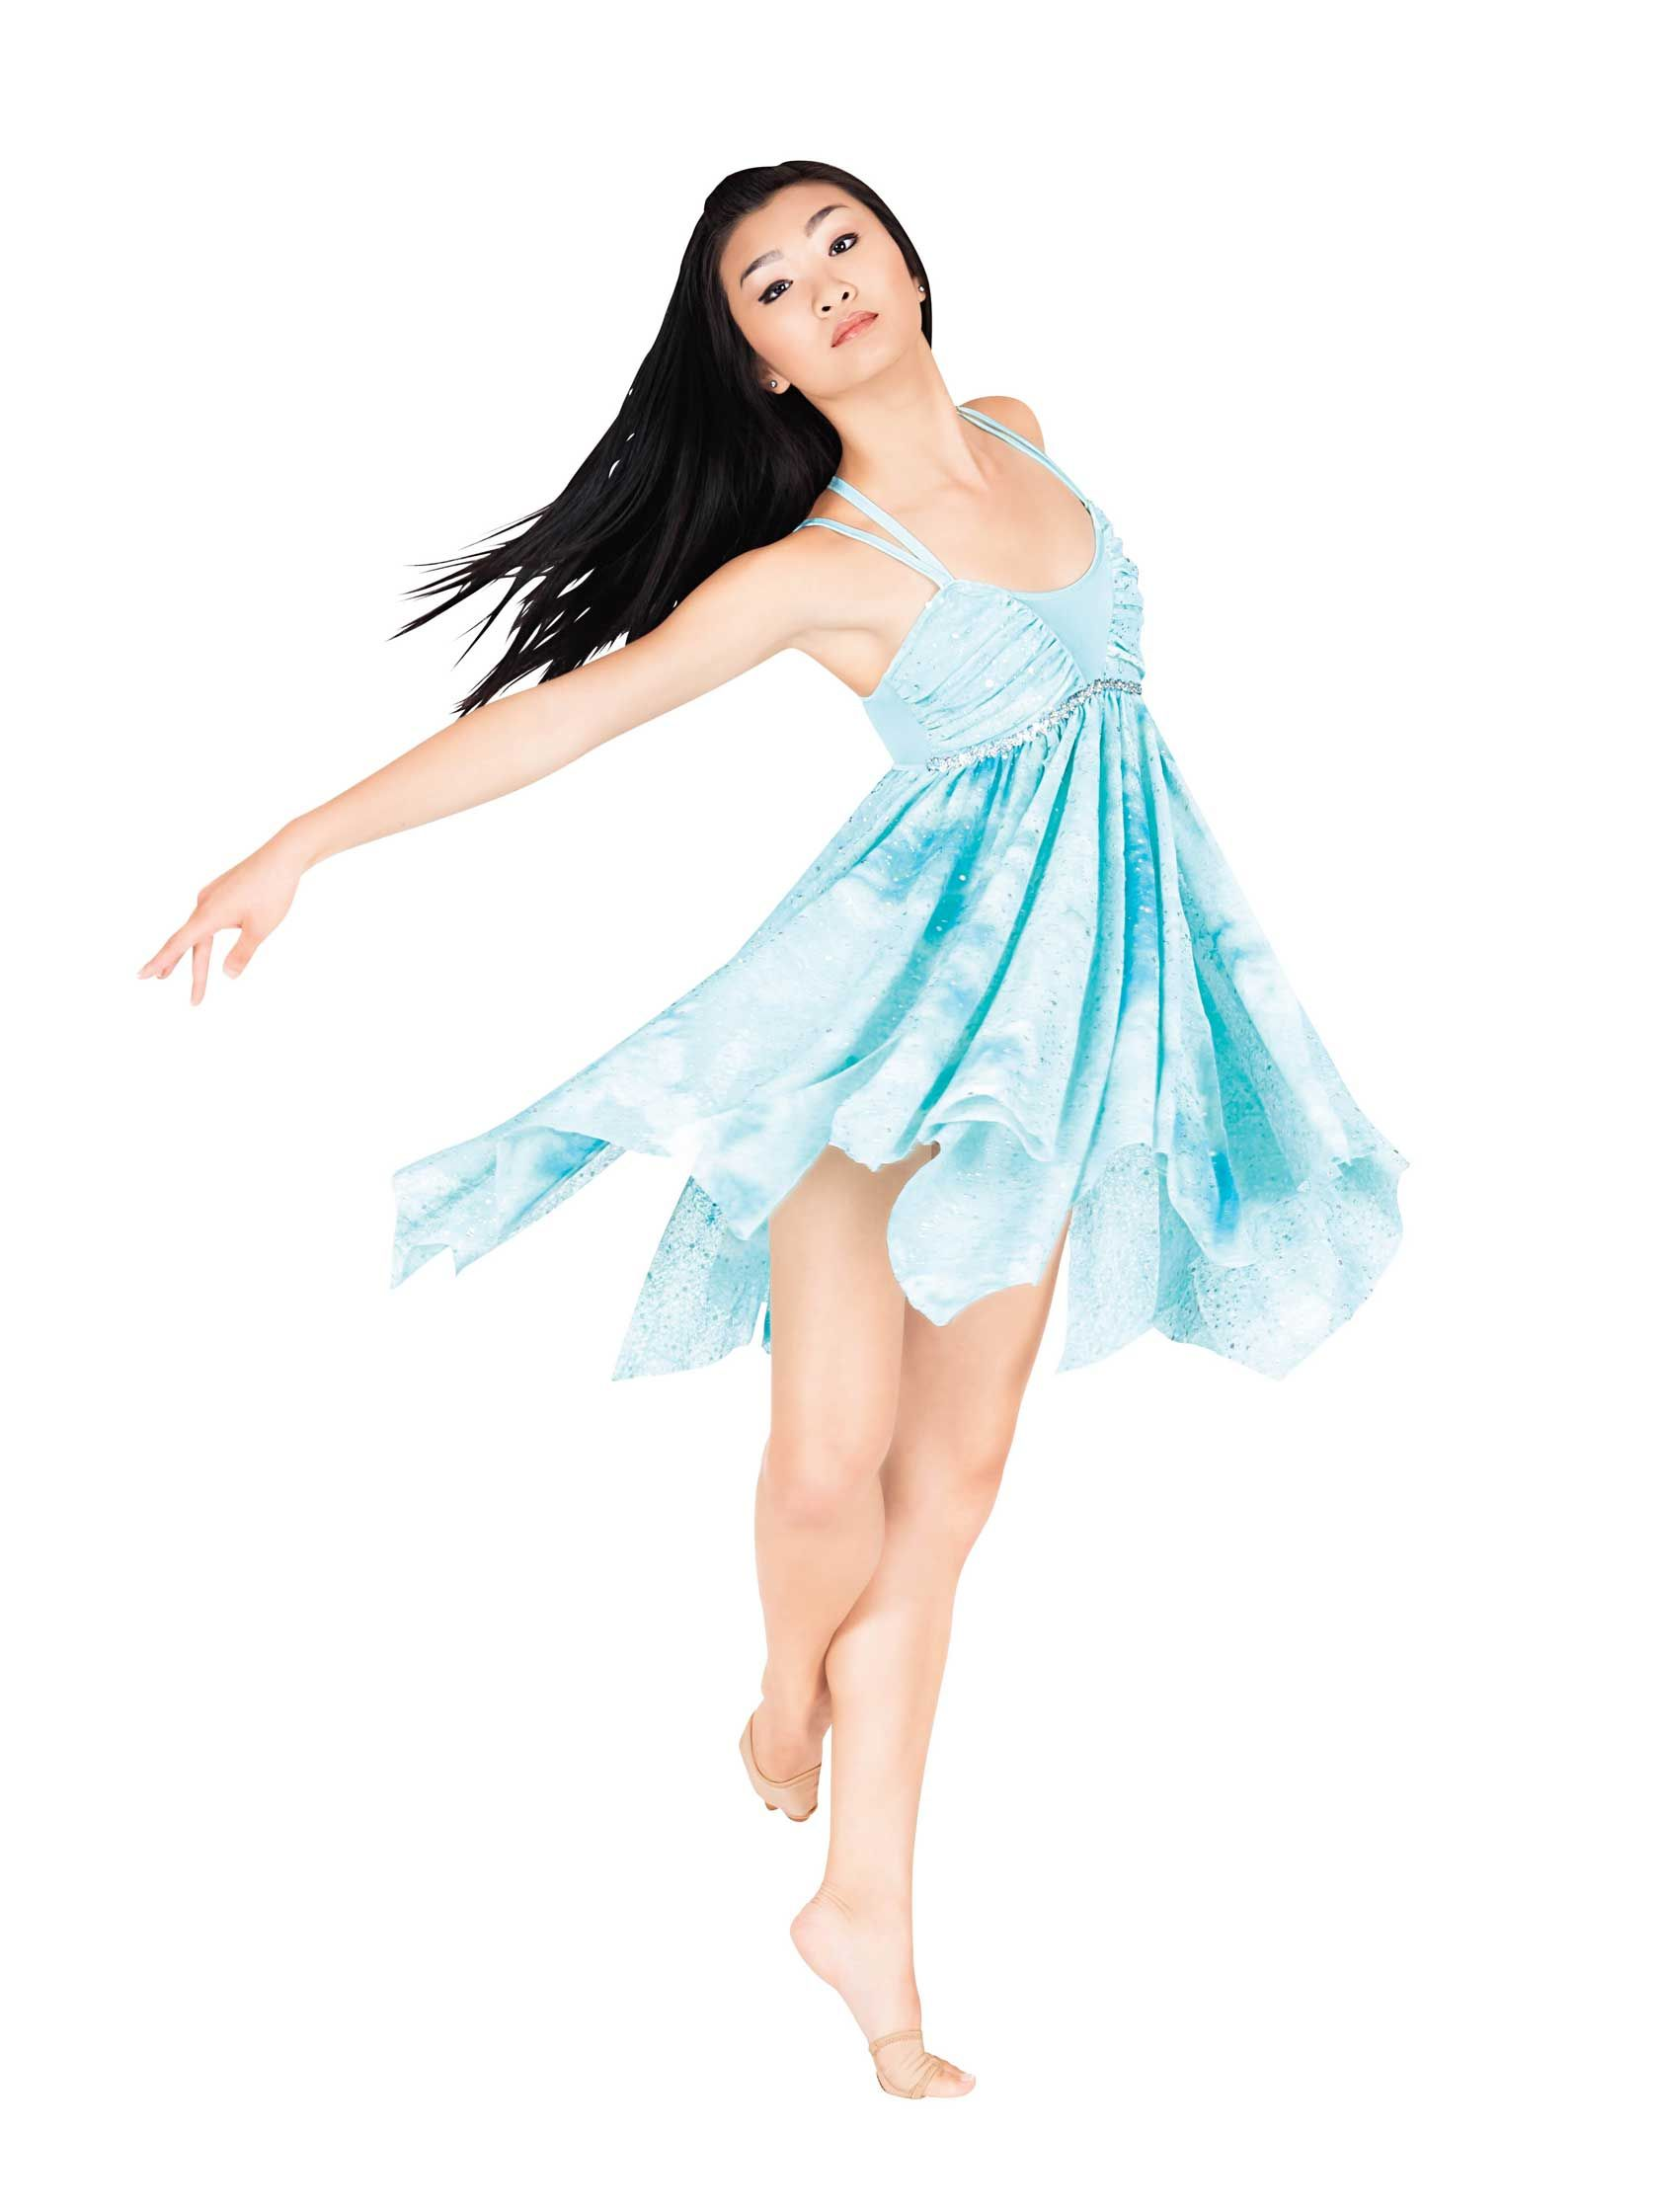 94ca5f936244 Hallelujah (TH4011/TH4011c) - by Theatricals. A new costume line by  Discount Dance Supply #DiscountDance #Theatricals #wedance #costume #Ballet  #Lyrical